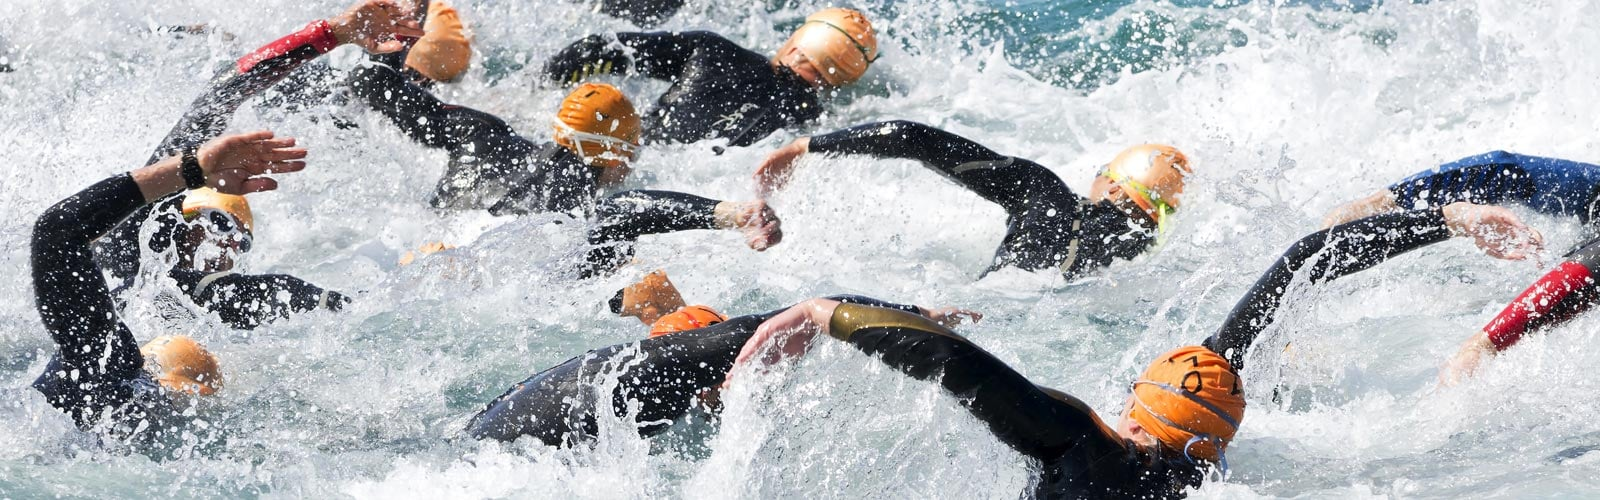 How Wetsuits Work